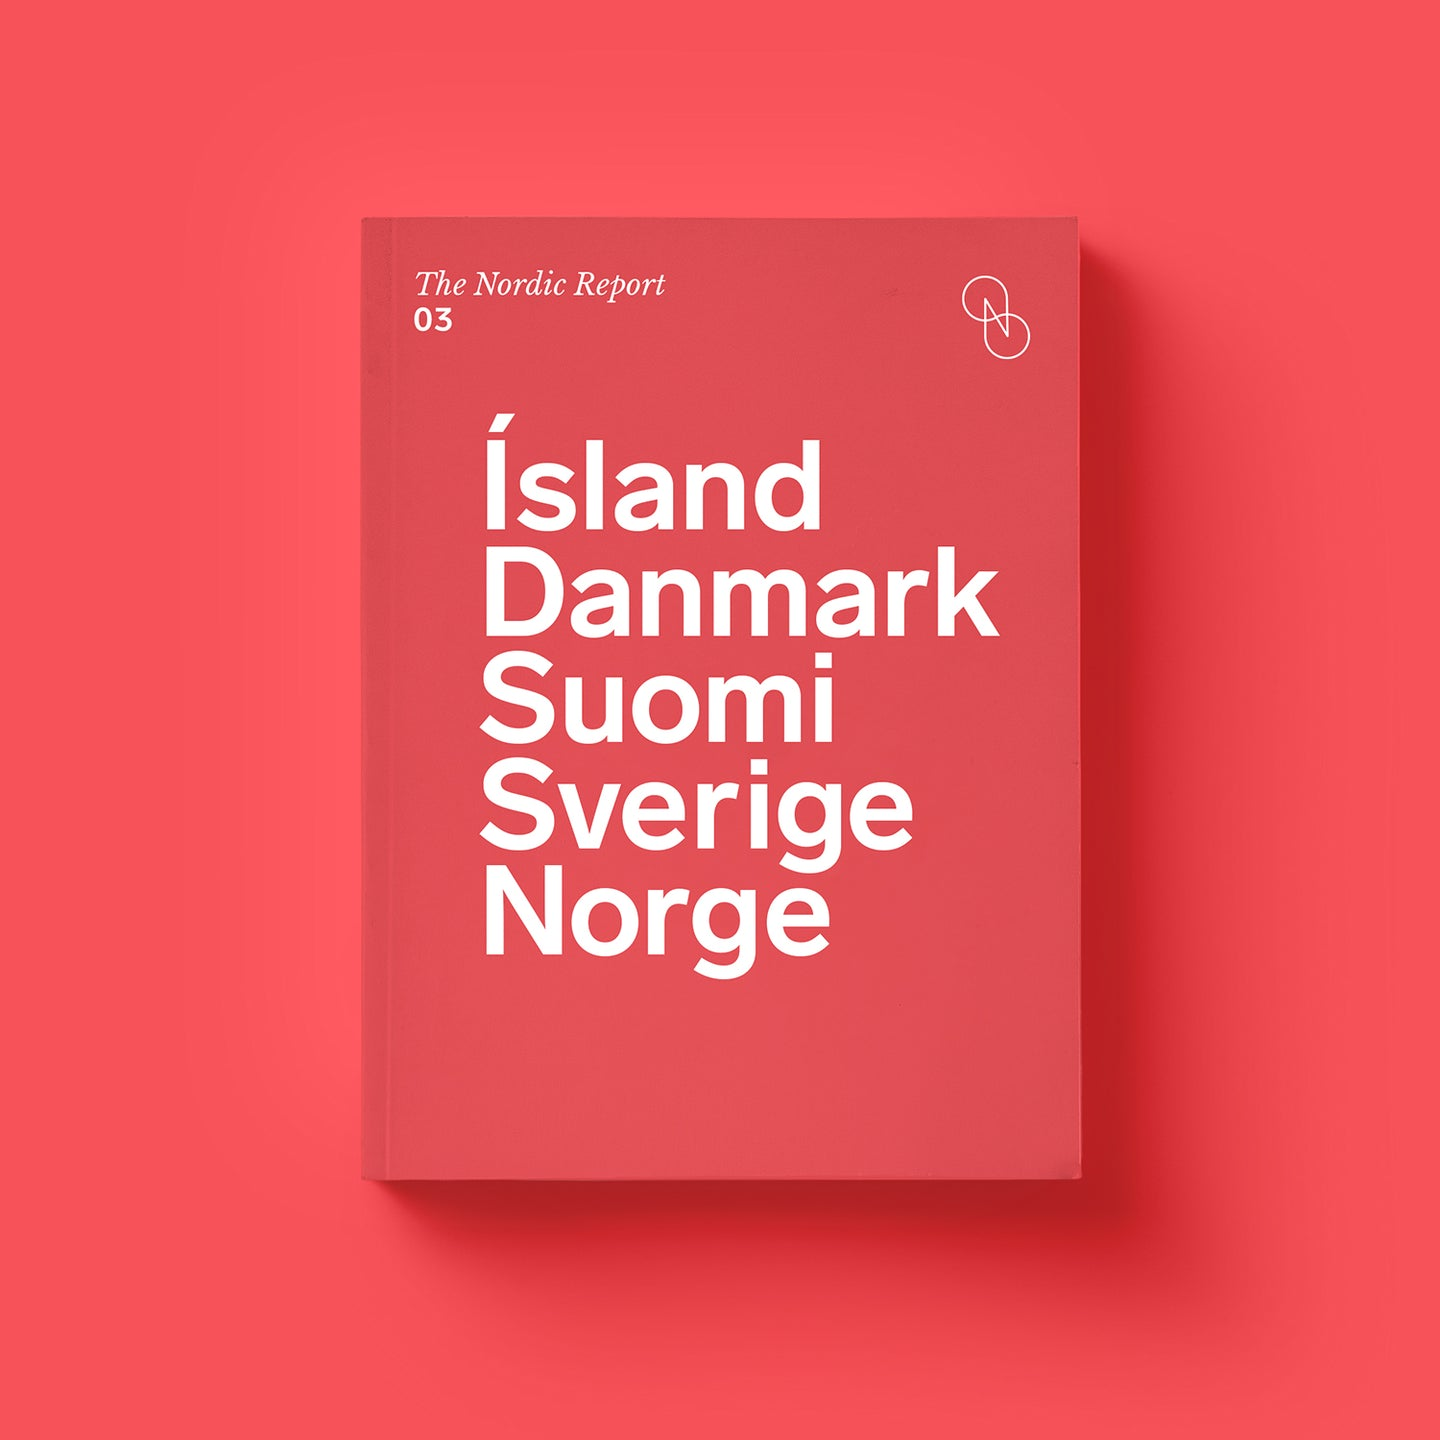 The Nordic Report 03